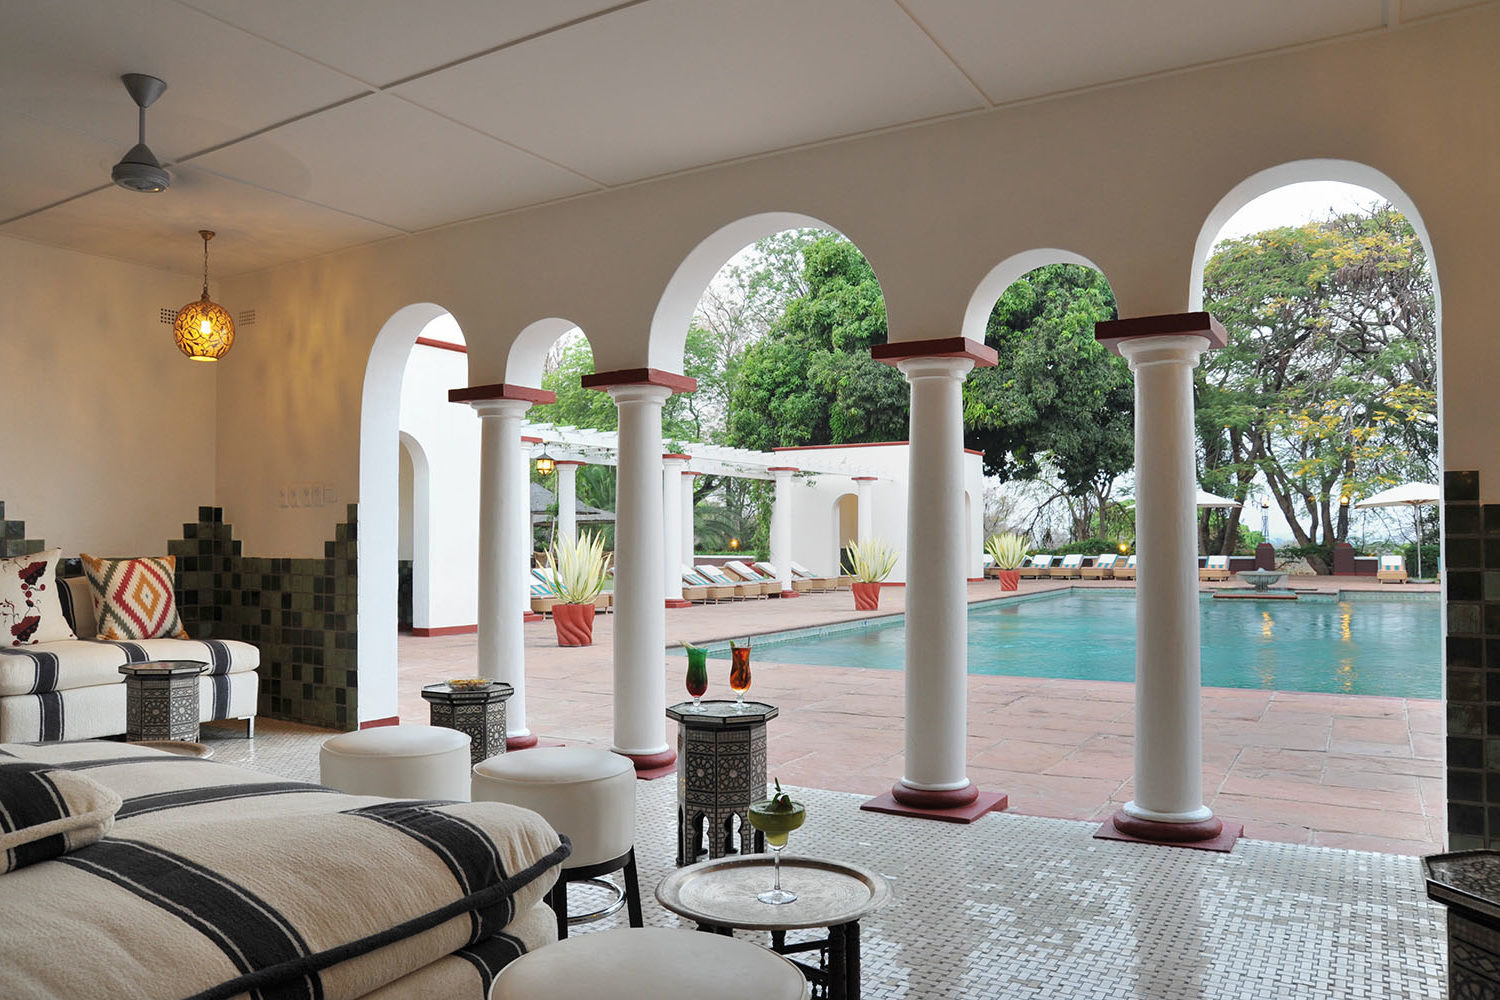 victoria falls hotel zimbabwe-accommodation-elegant-luxury-hotel-pool